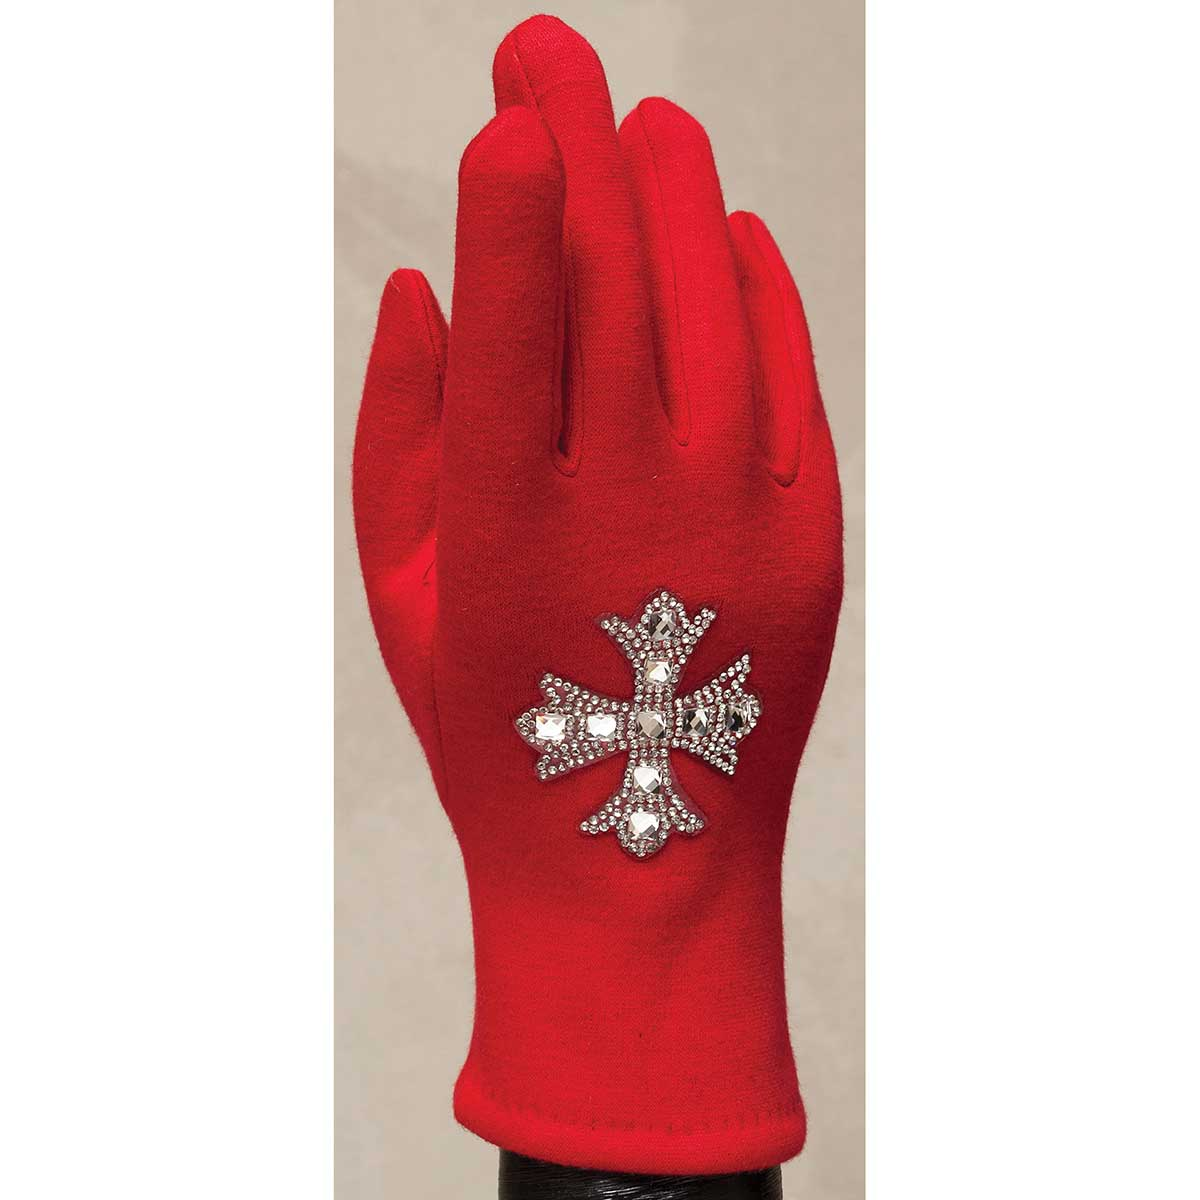 Red Gloves with Crystal Southern Cross